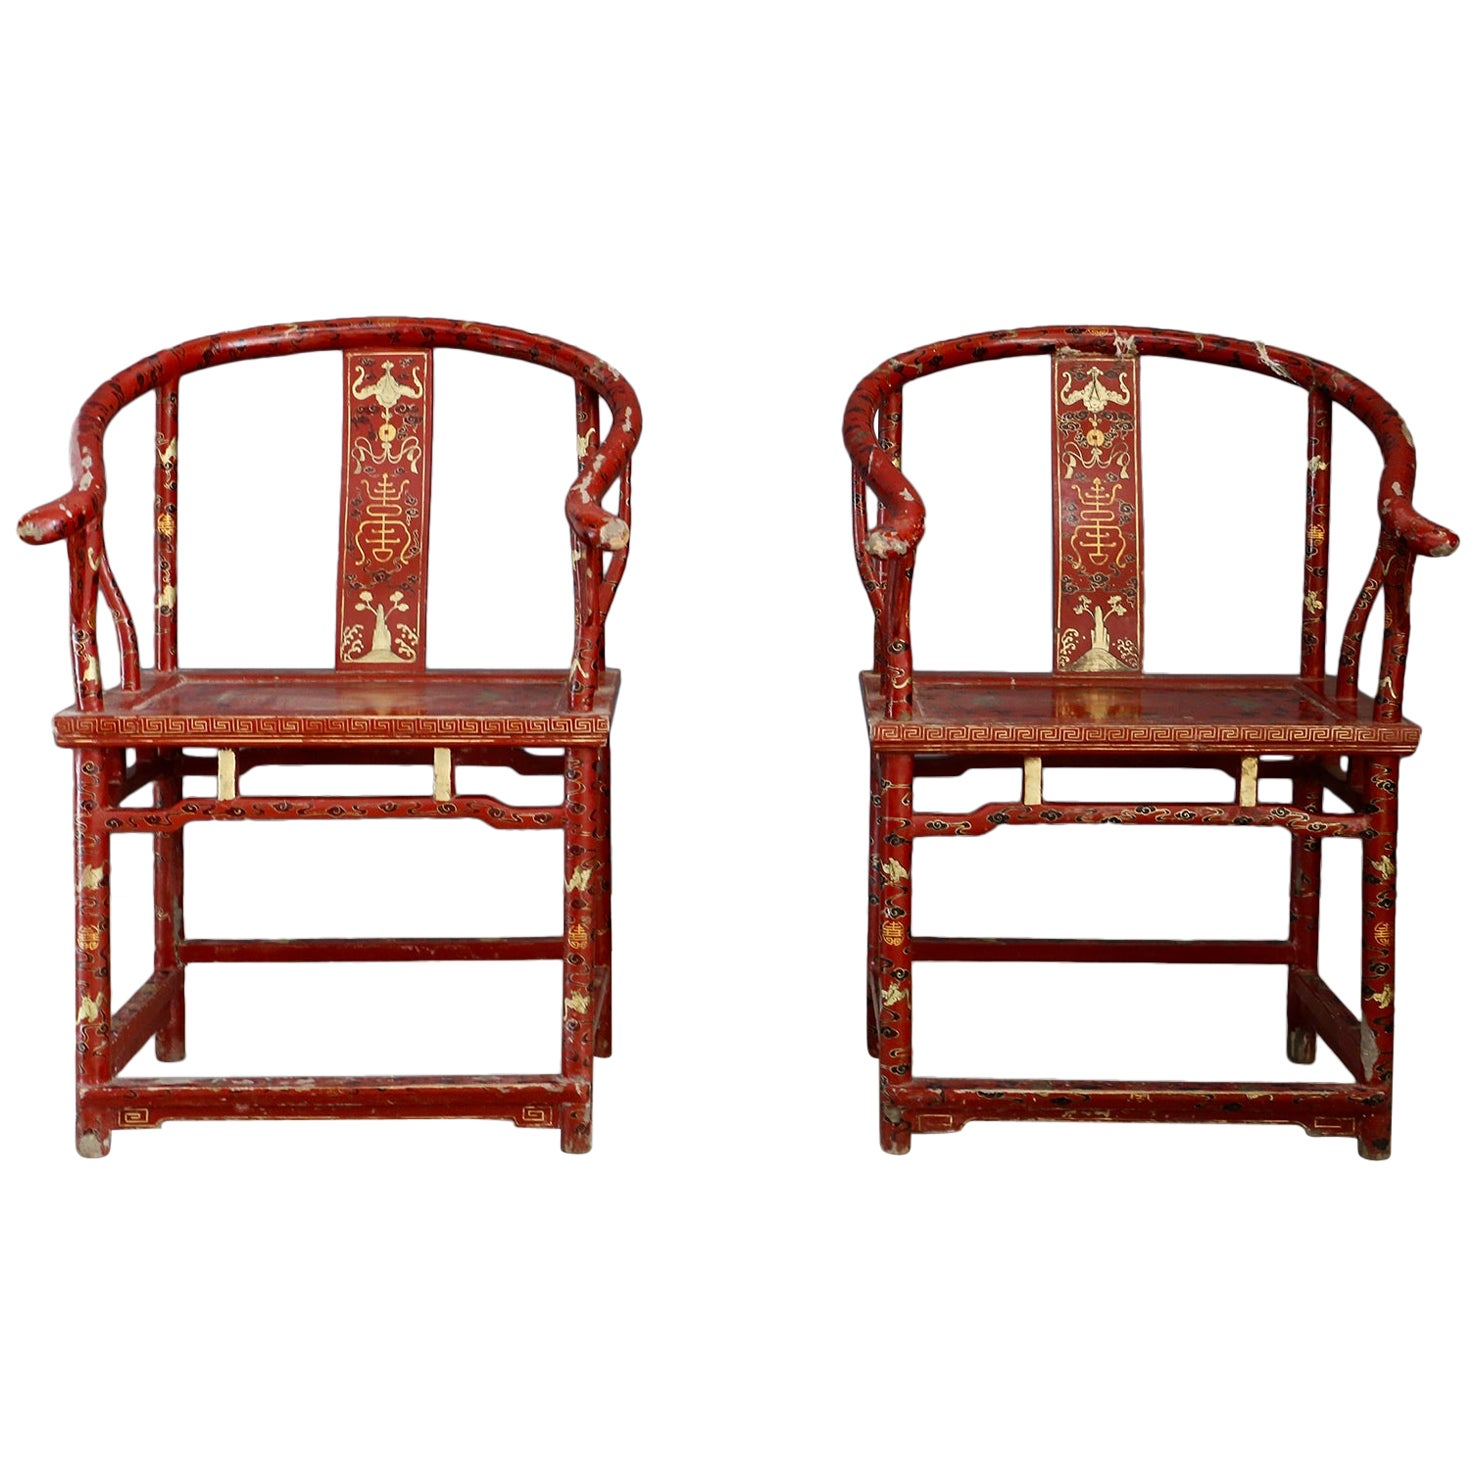 Pair of Chinese Lacquered Red Wood and Gold Lacquered of 18th Century